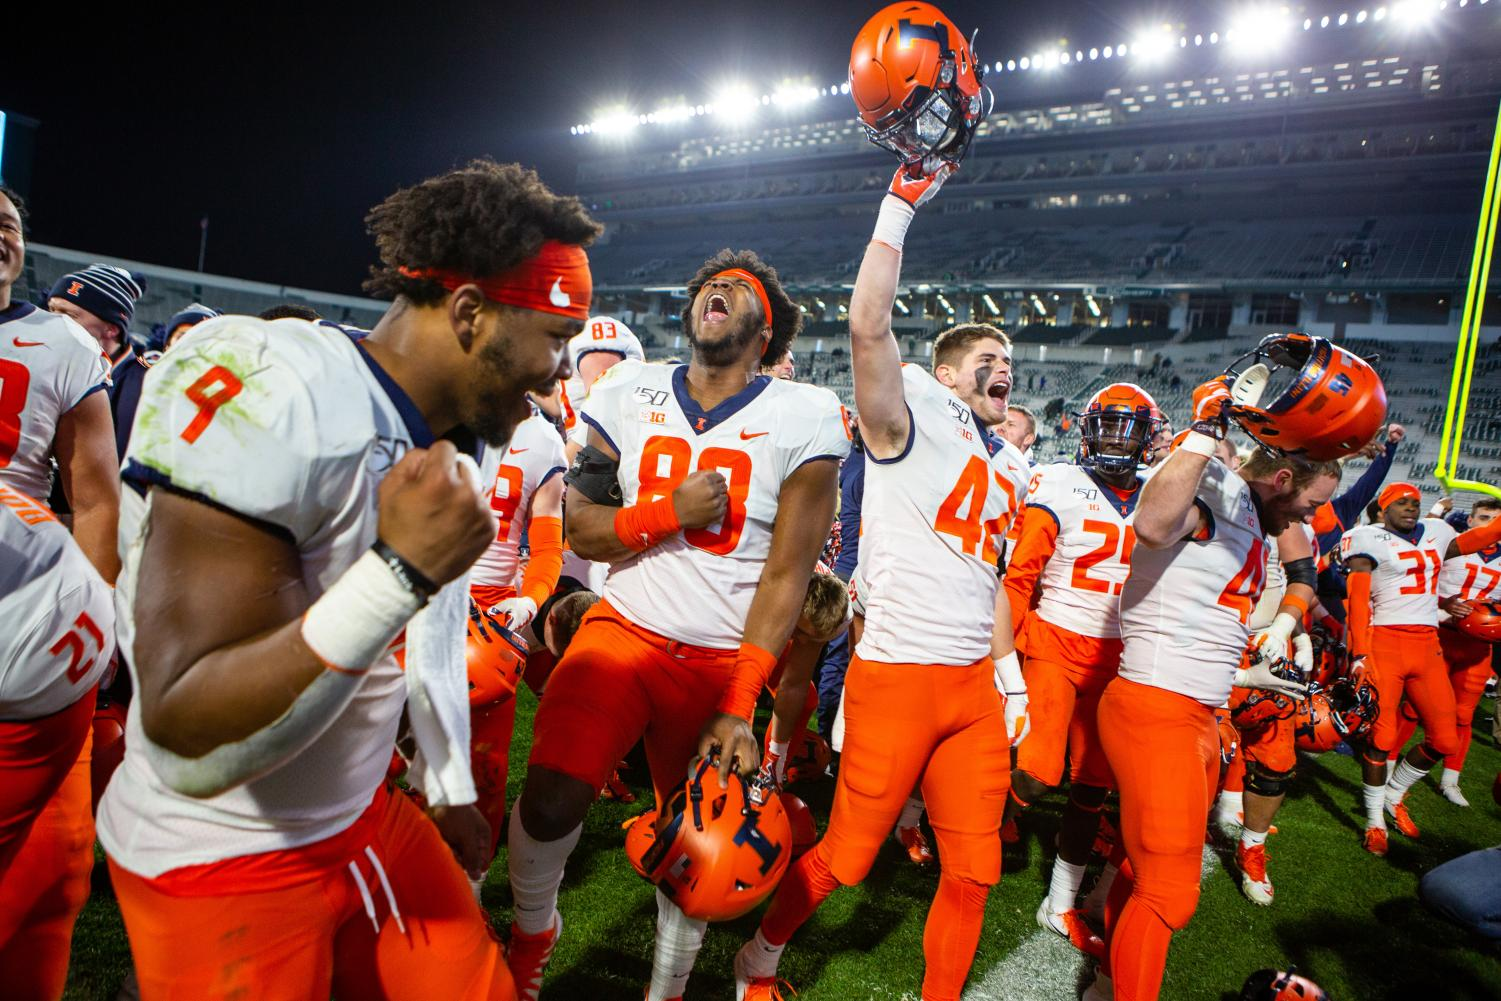 The Illini Football team erupt in celebration after defeating the Michigan State Spartans on Saturday. The Illini won 37-34.